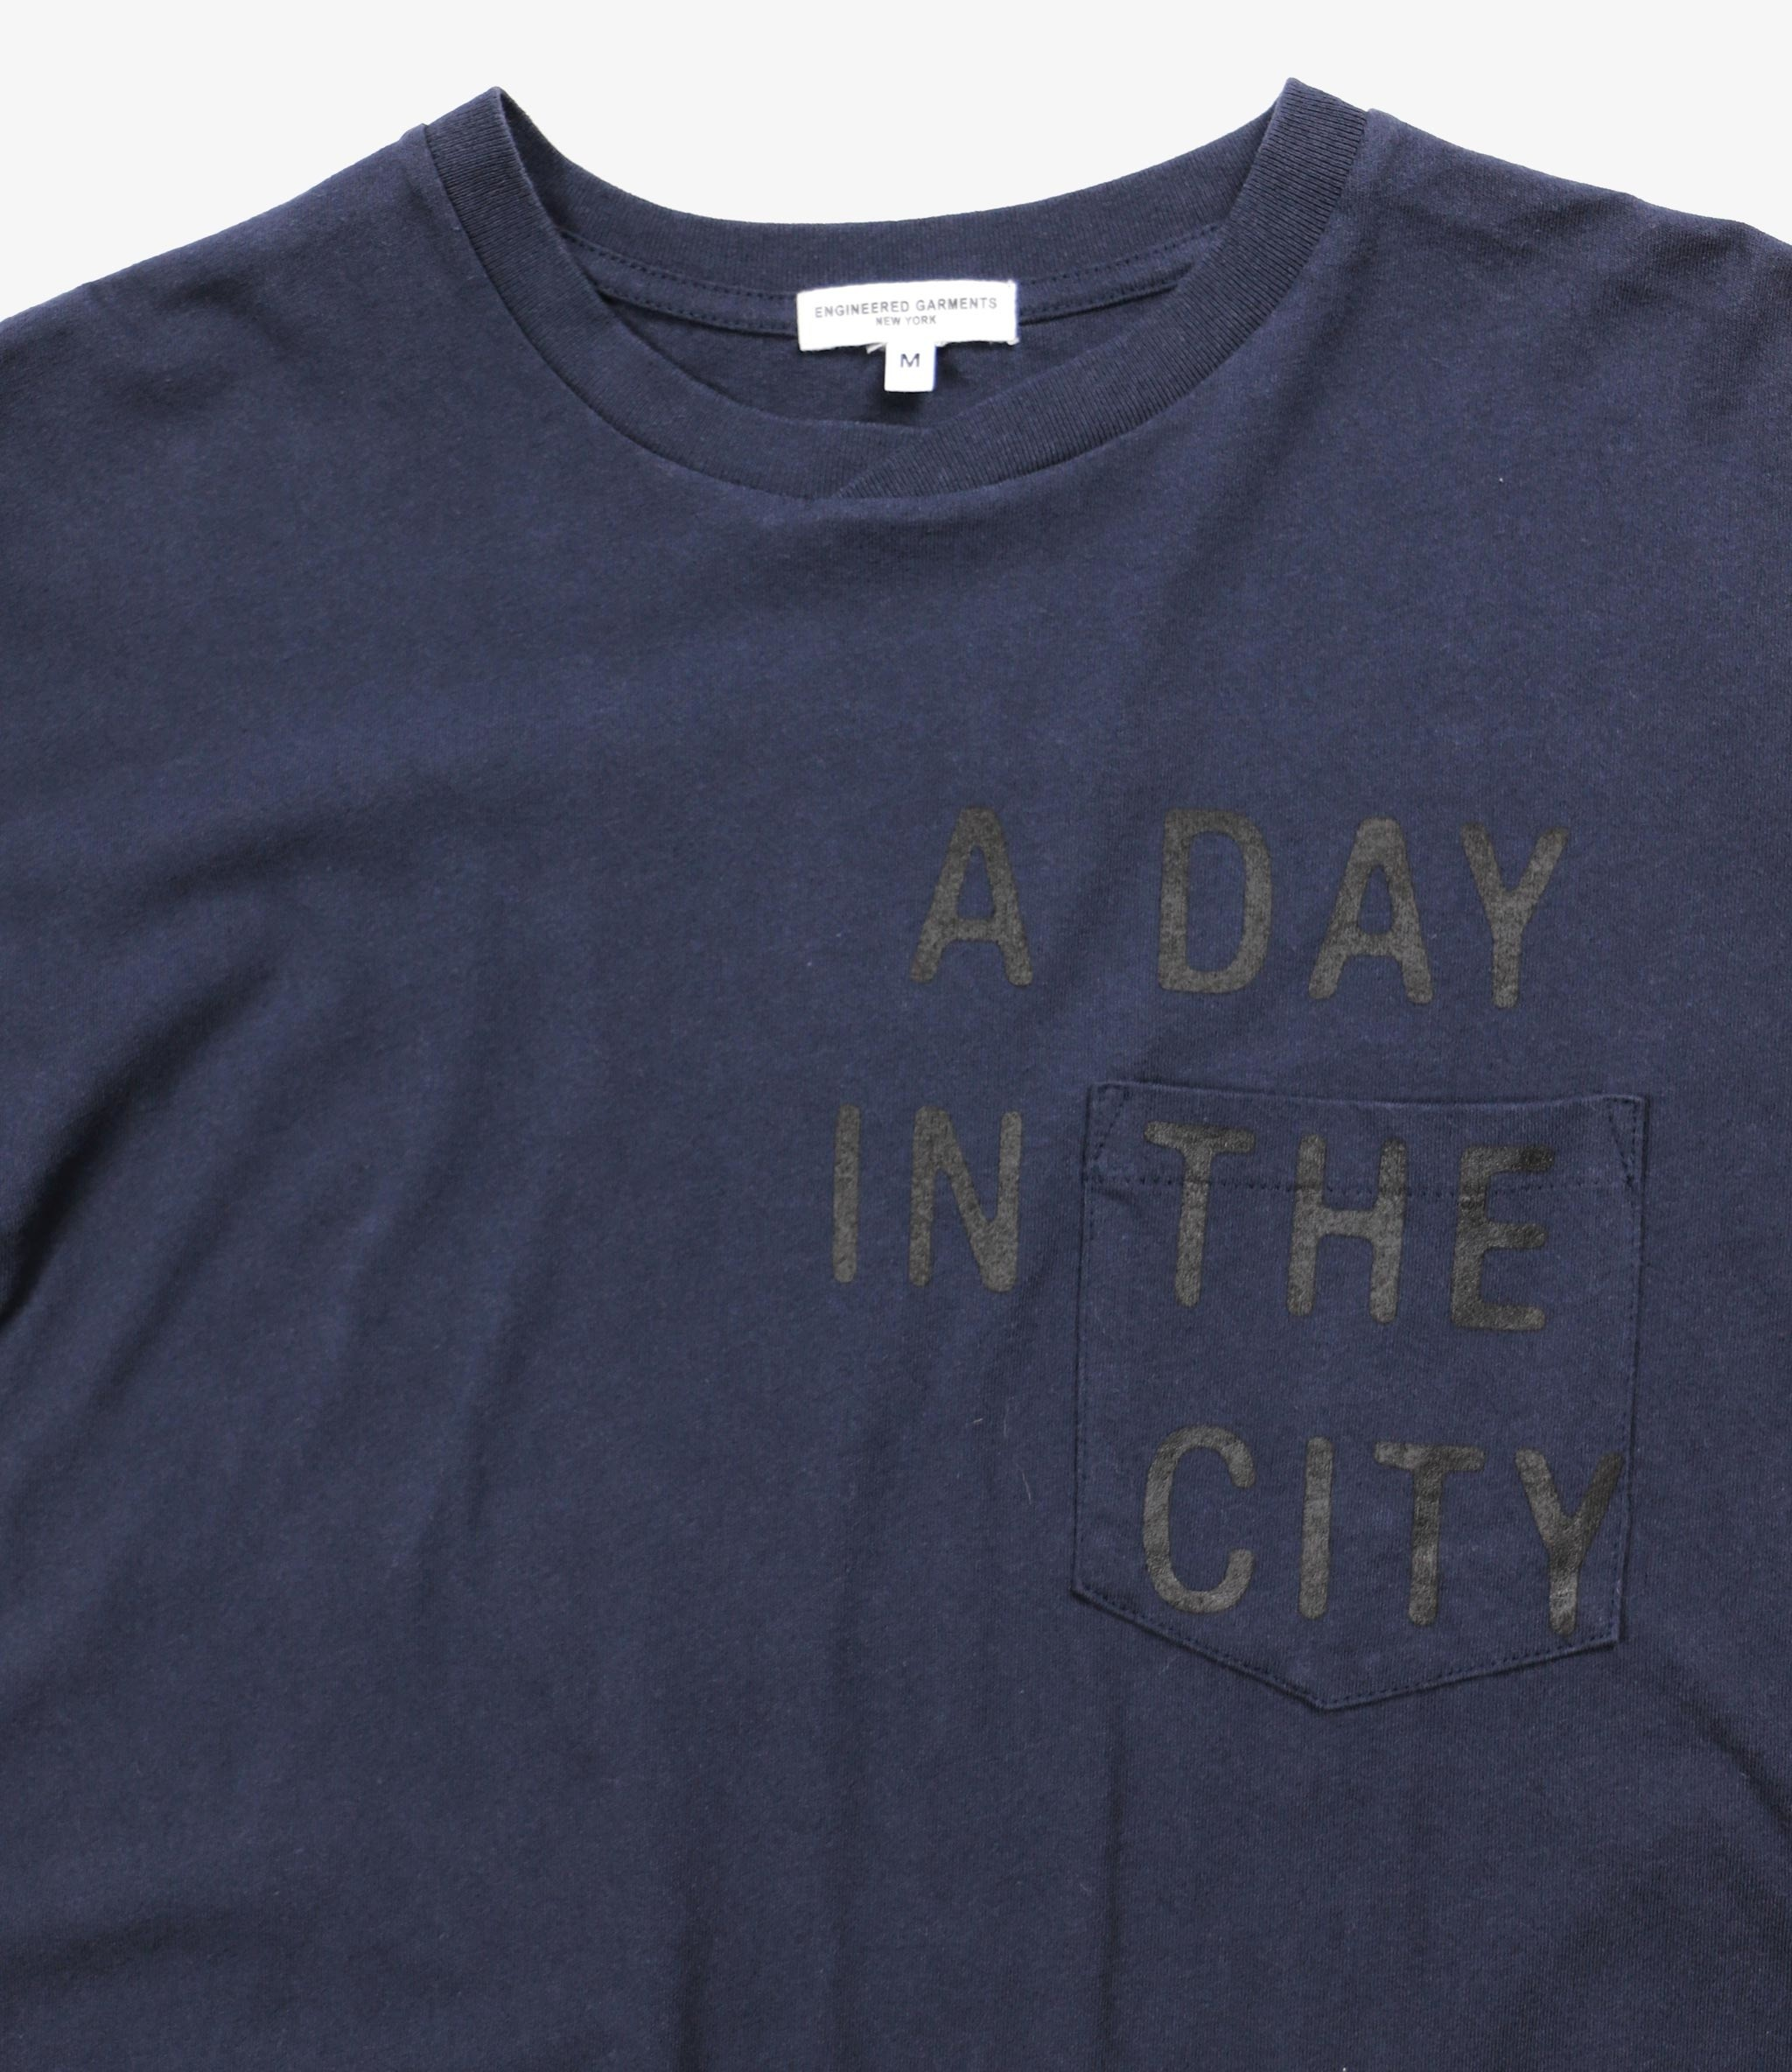 Engineered Garments Printed Cross Crew Neck T-shirt - Navy - A Day